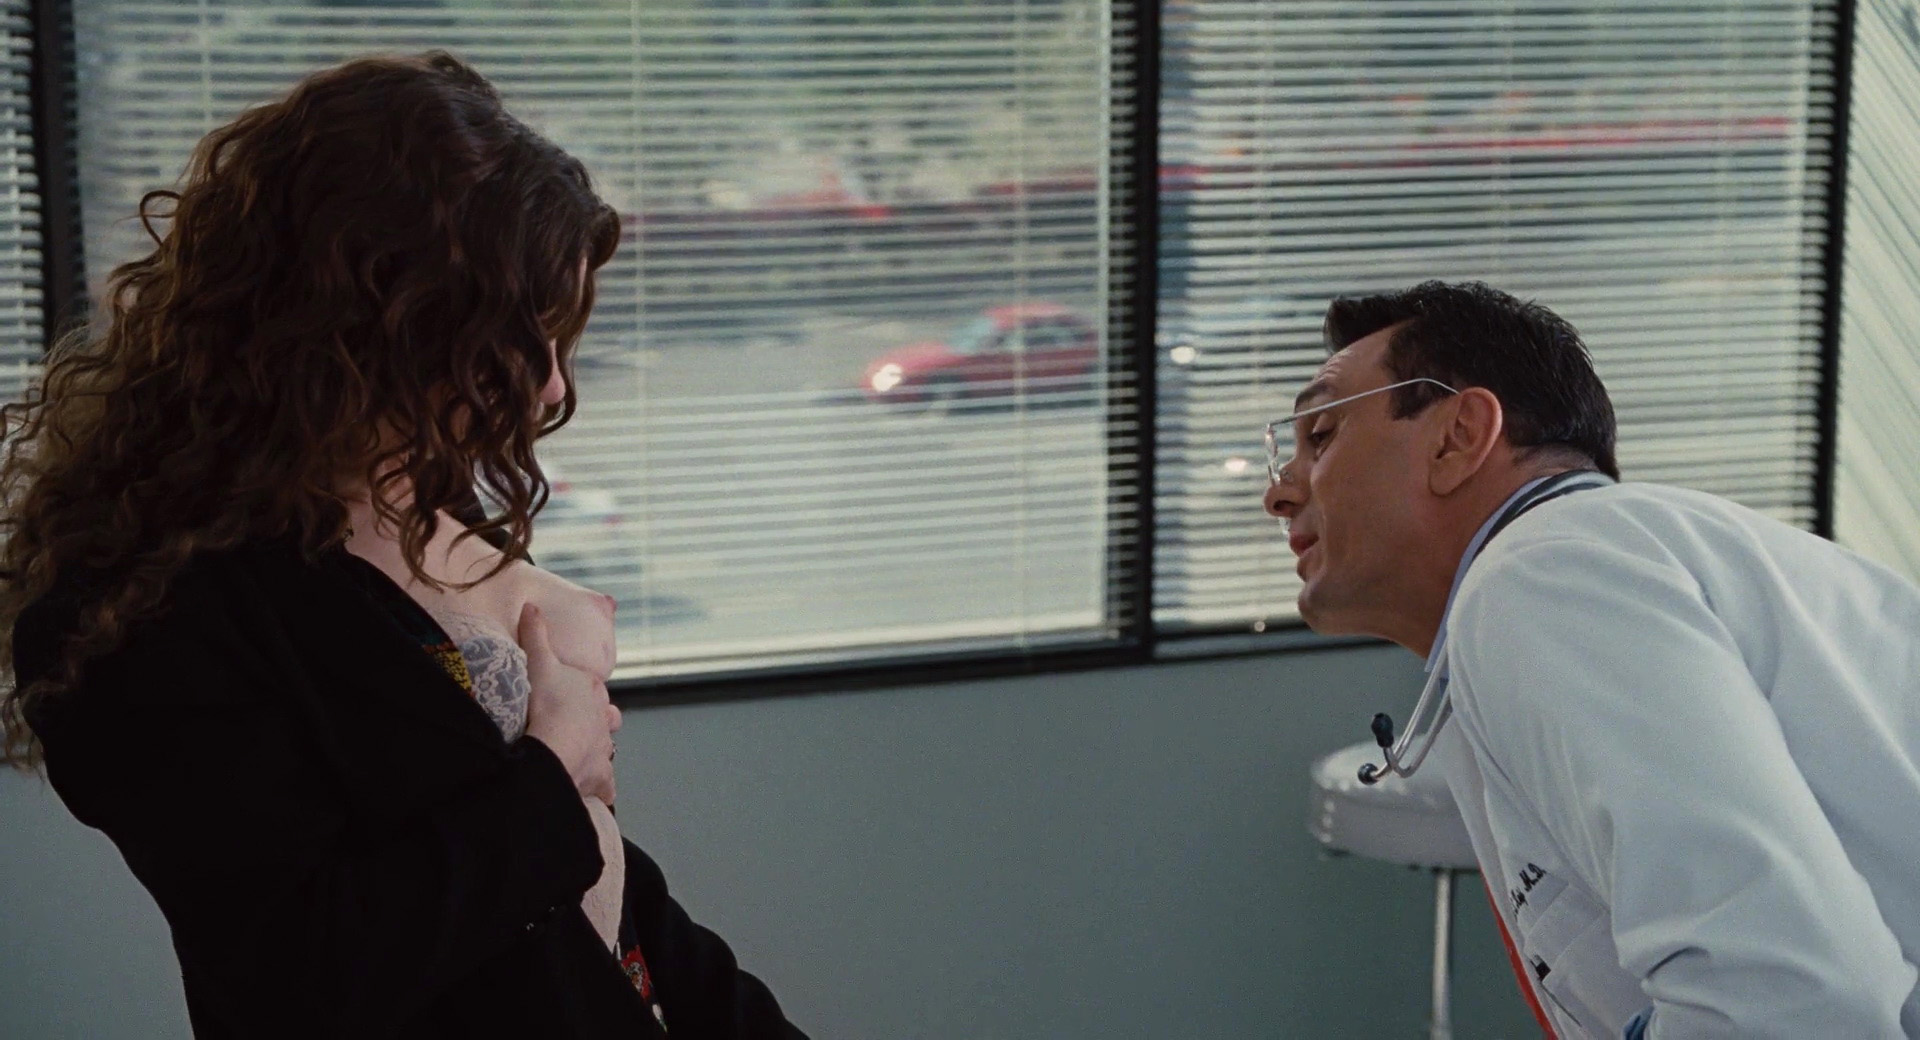 Cleared anne hathaway nude scene love and other drugs